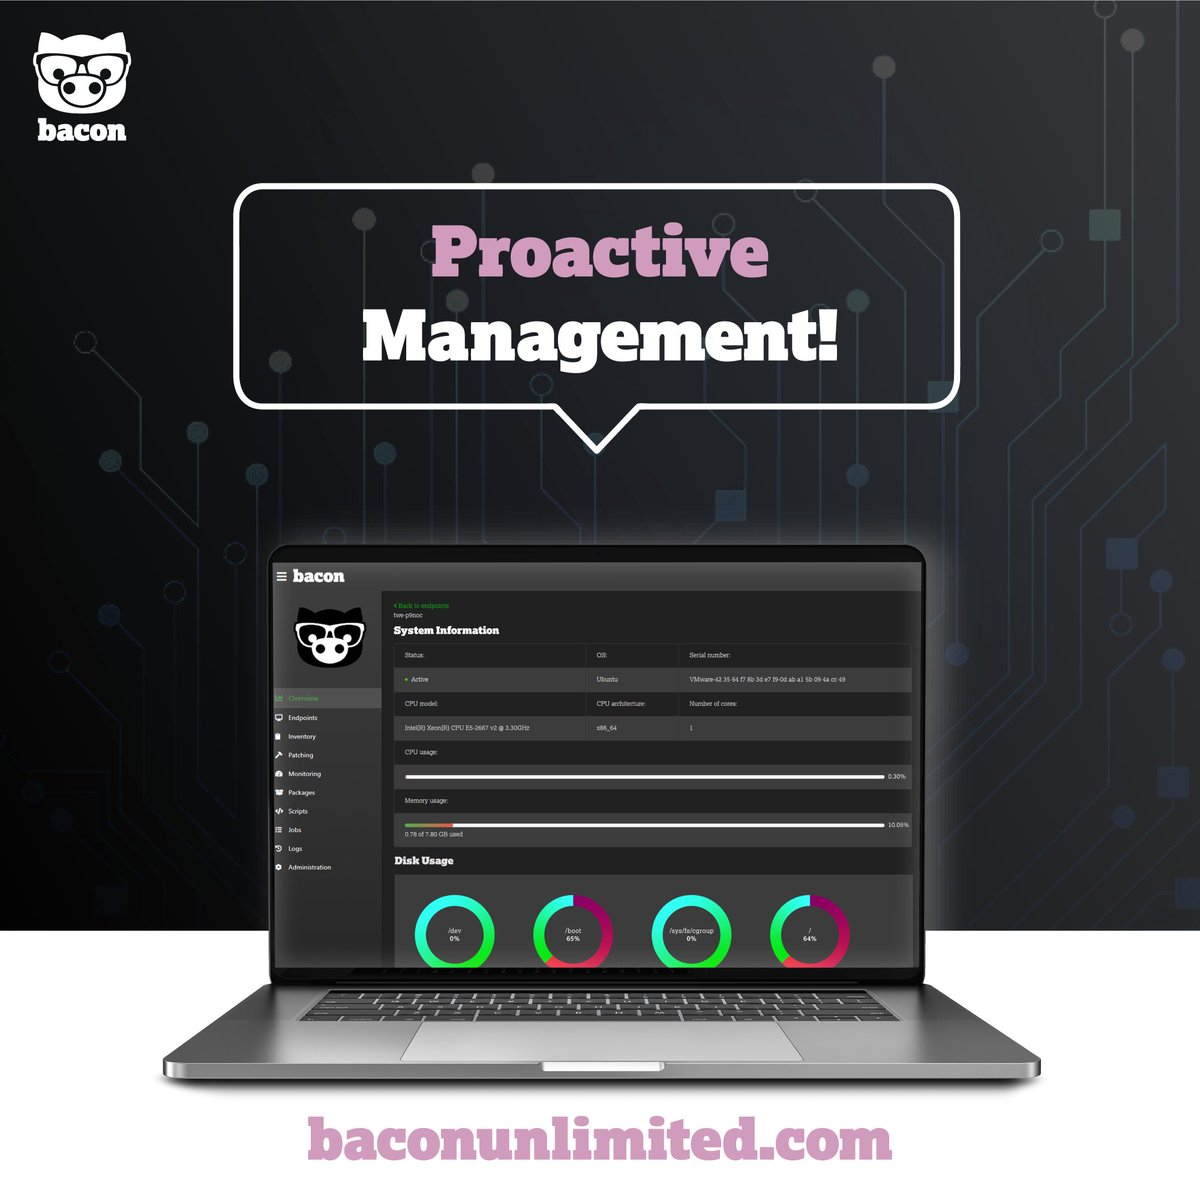 Announcing Bacon v1.4--proactive management!   FREE #webinar on June 5 @ 2pm. Sign up today at https://baconunlimited.com  #baconunlimited #getbacon #bacon #itsupport #itservices #itsoftware #tech #newtech #technology #innovation #software #windows #mac #linuxpic.twitter.com/LWX0MXM3tz